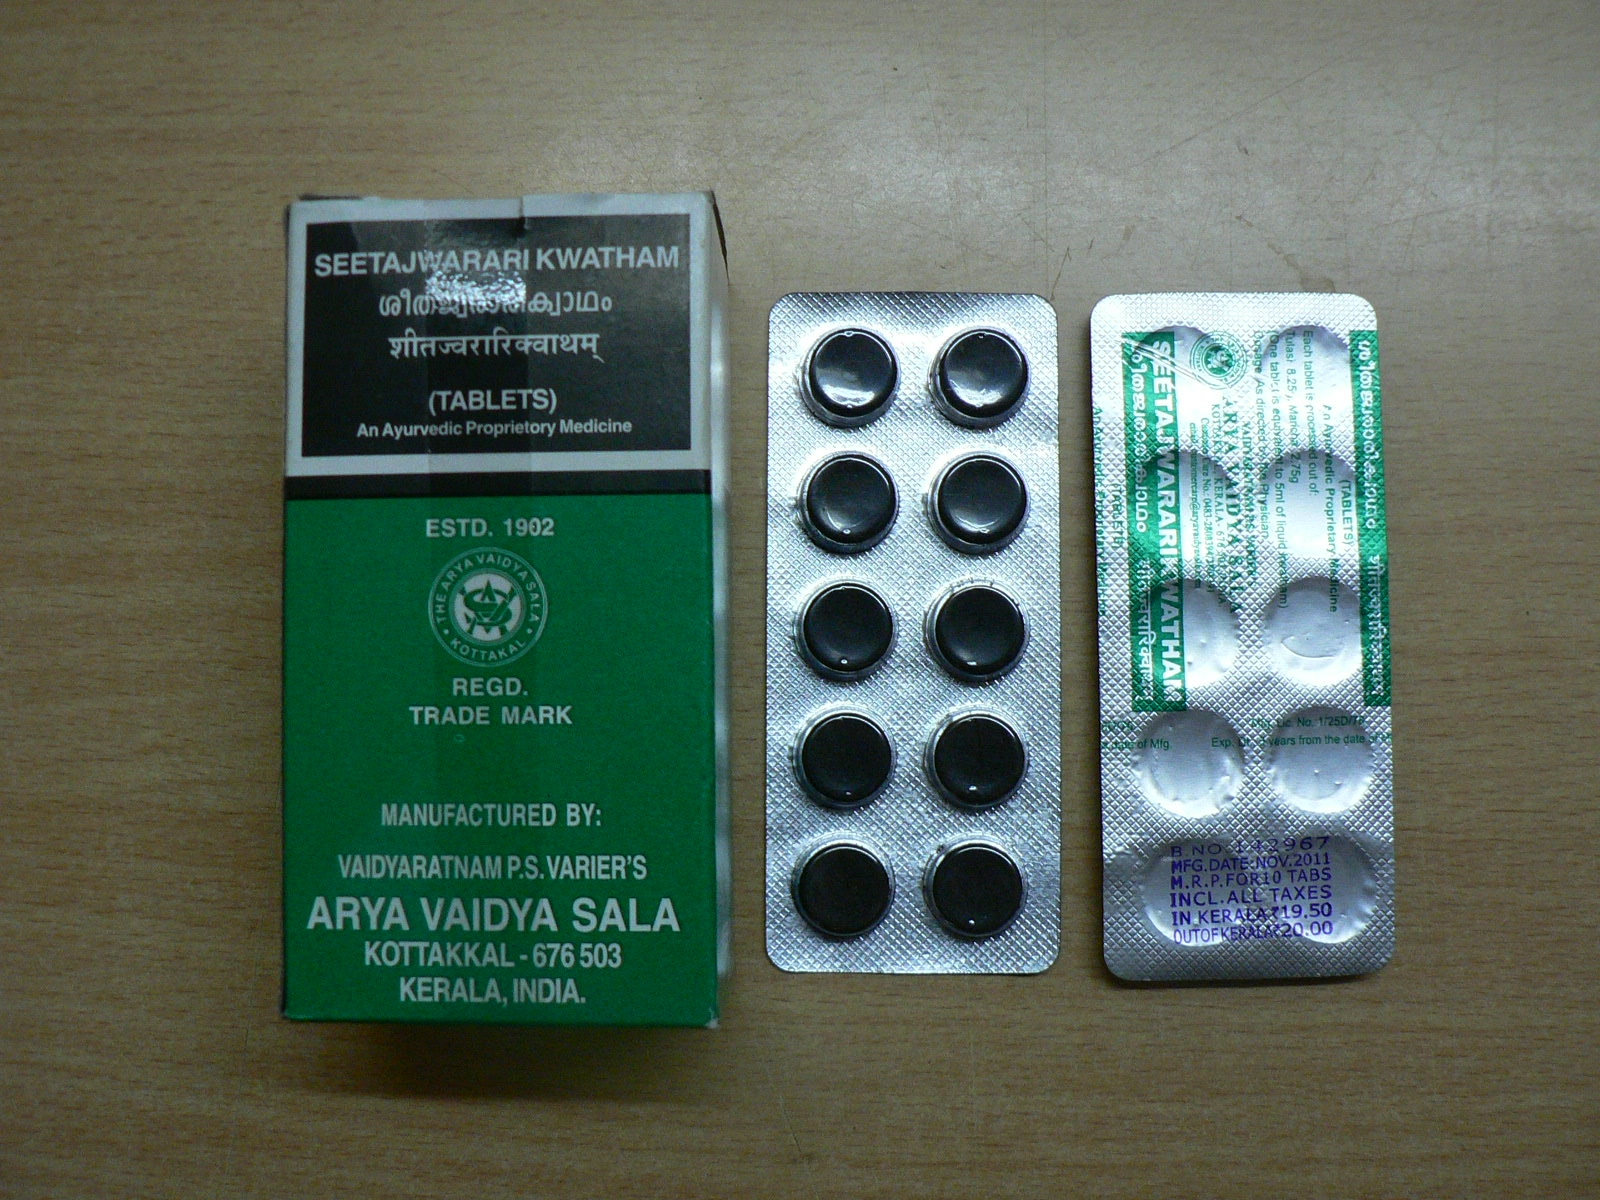 <b>SEETAJWARARI KWATHAM</B><BR>AVS - 1 blister of 10 tablets